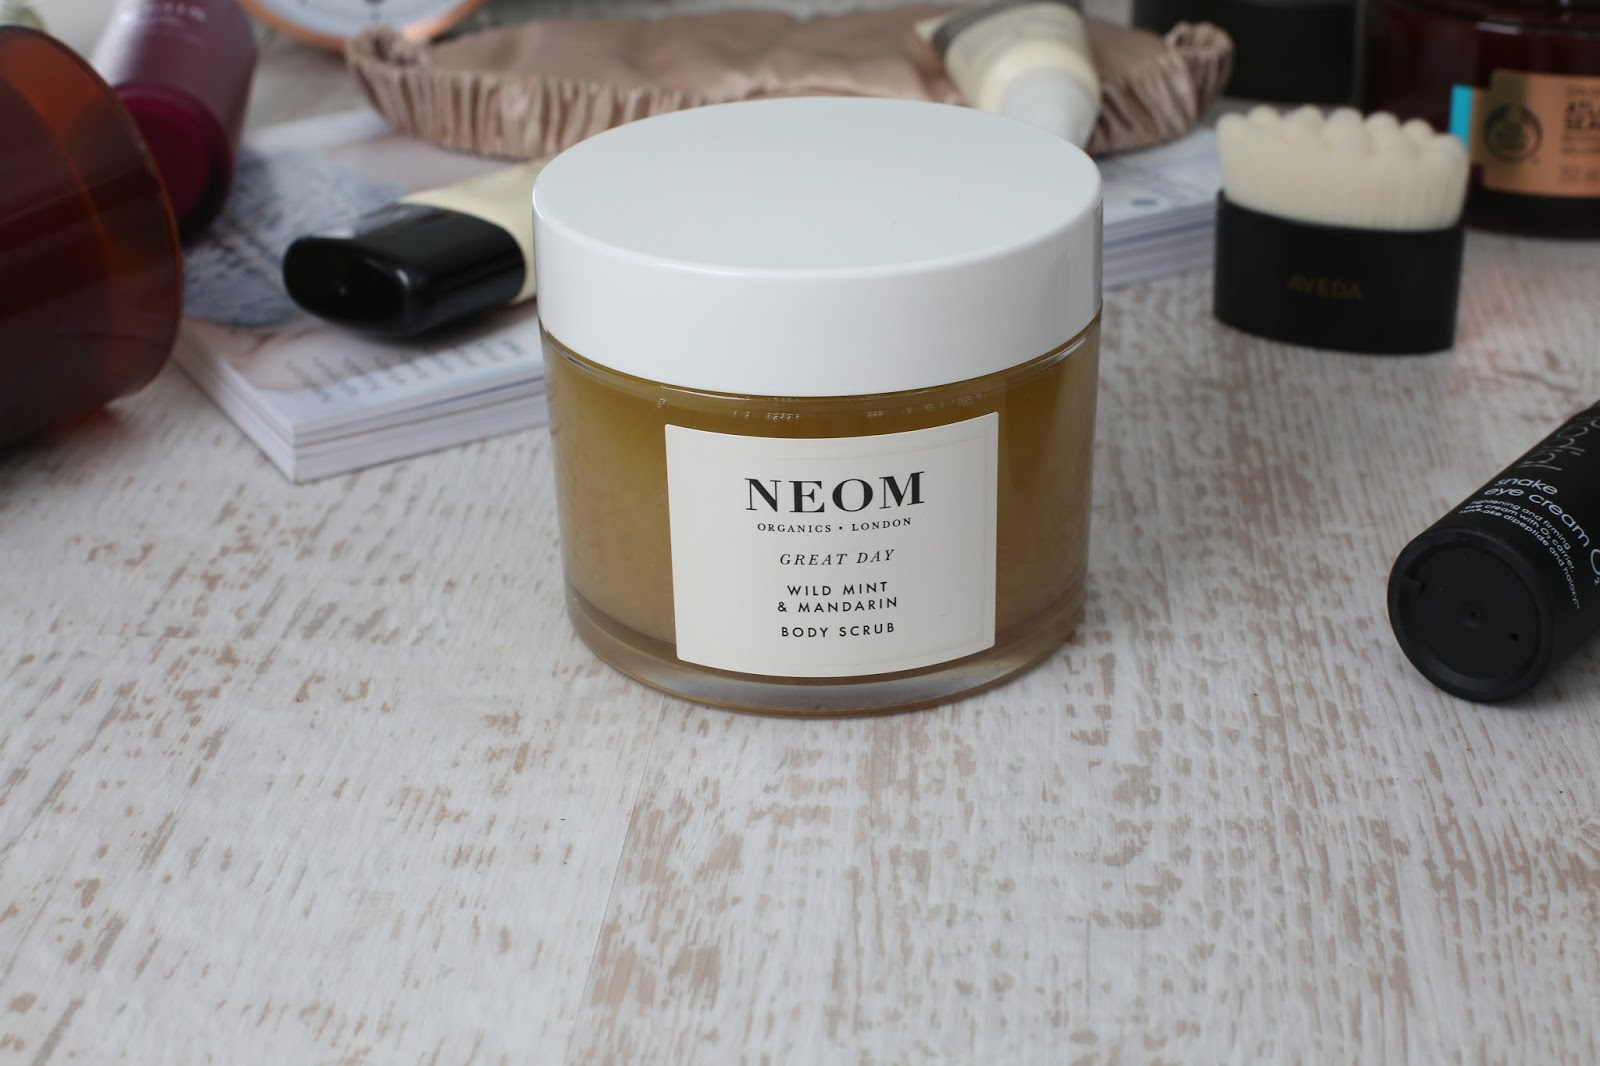 Neom great day wild mint and mandarin body scrub